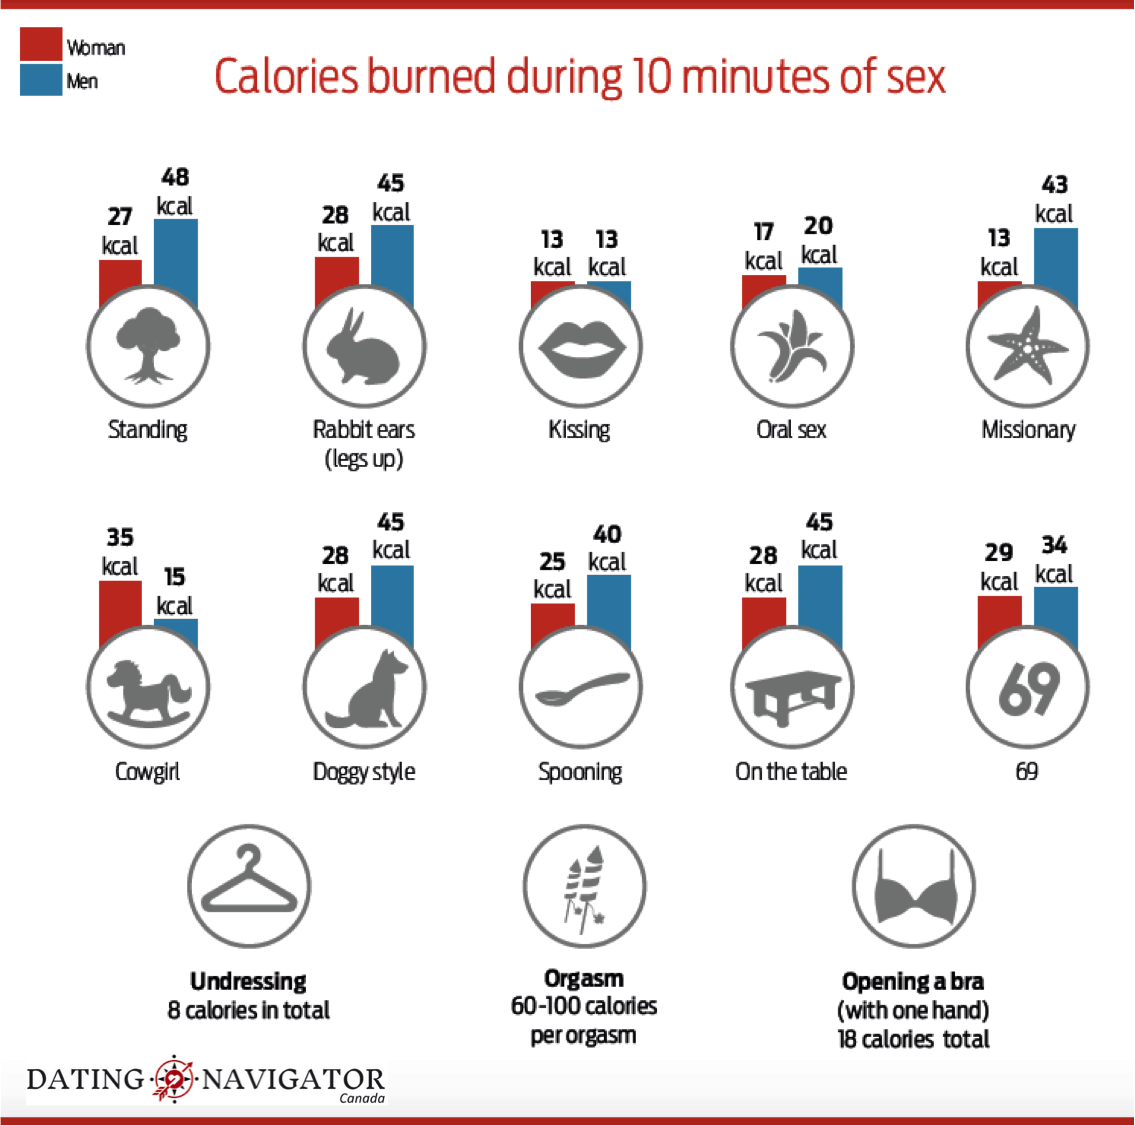 Calories burned during 10 minutes of sex